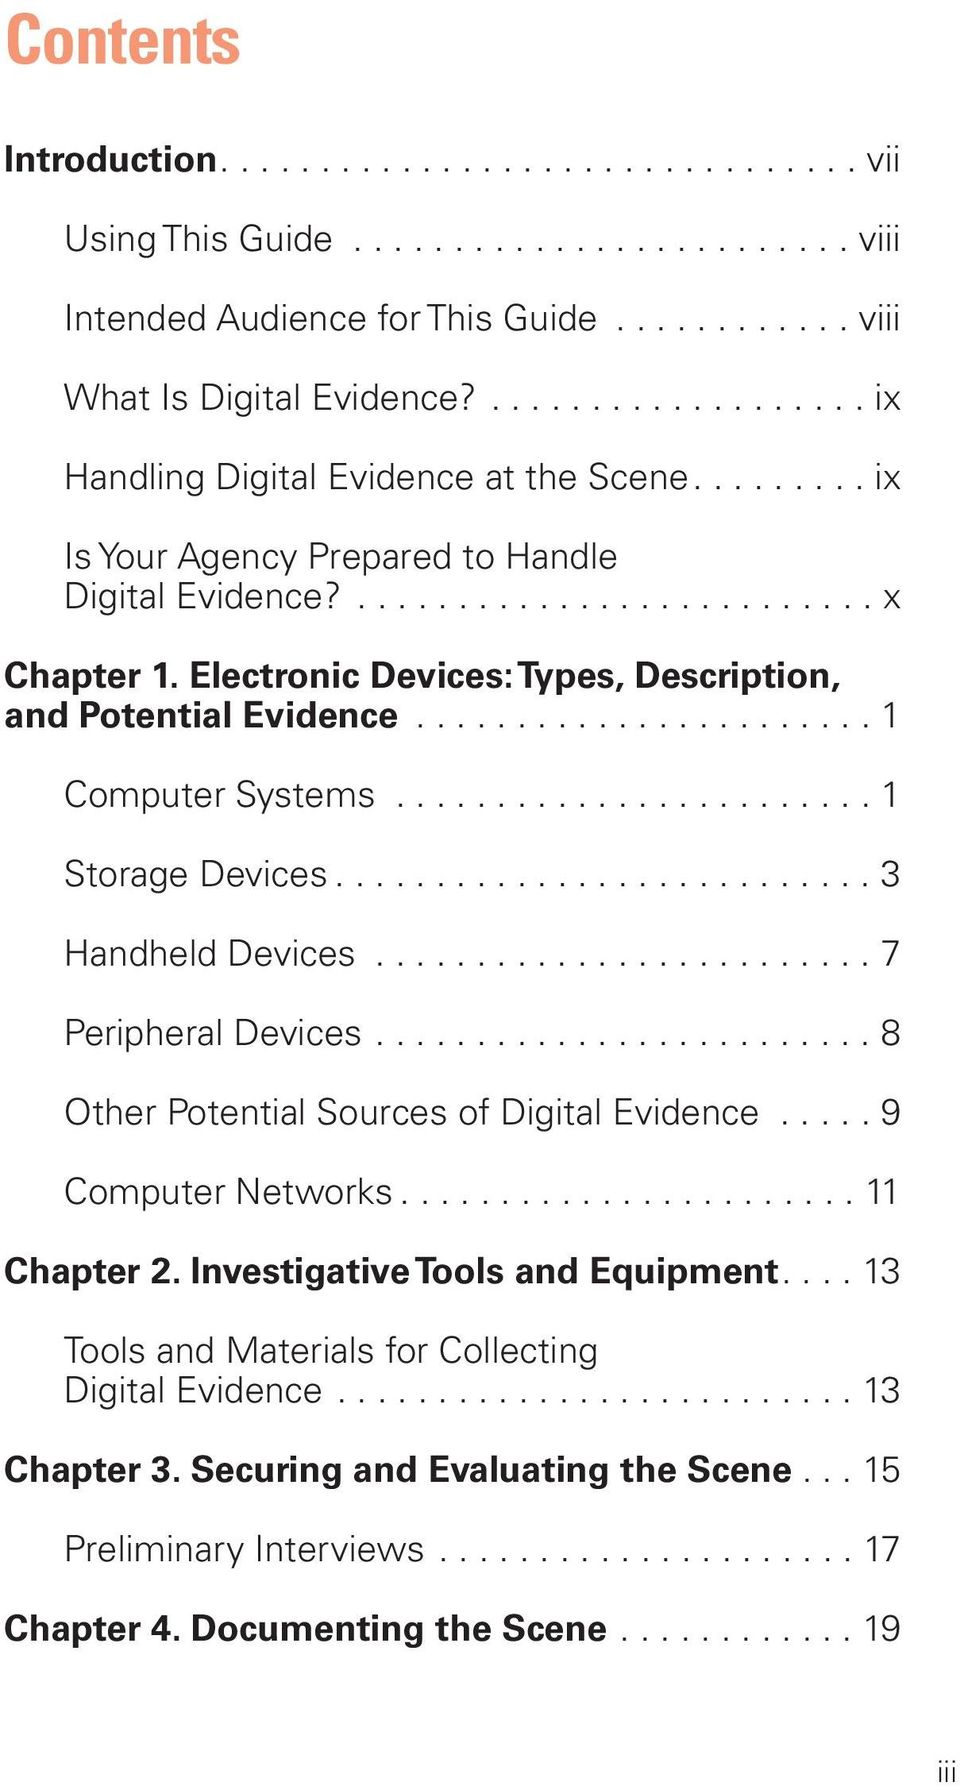 Electronic Devices:Types, Description, and Potential Evidence....................... 1 Computer Systems........................ 1 Storage Devices........................... 3 Handheld Devices.